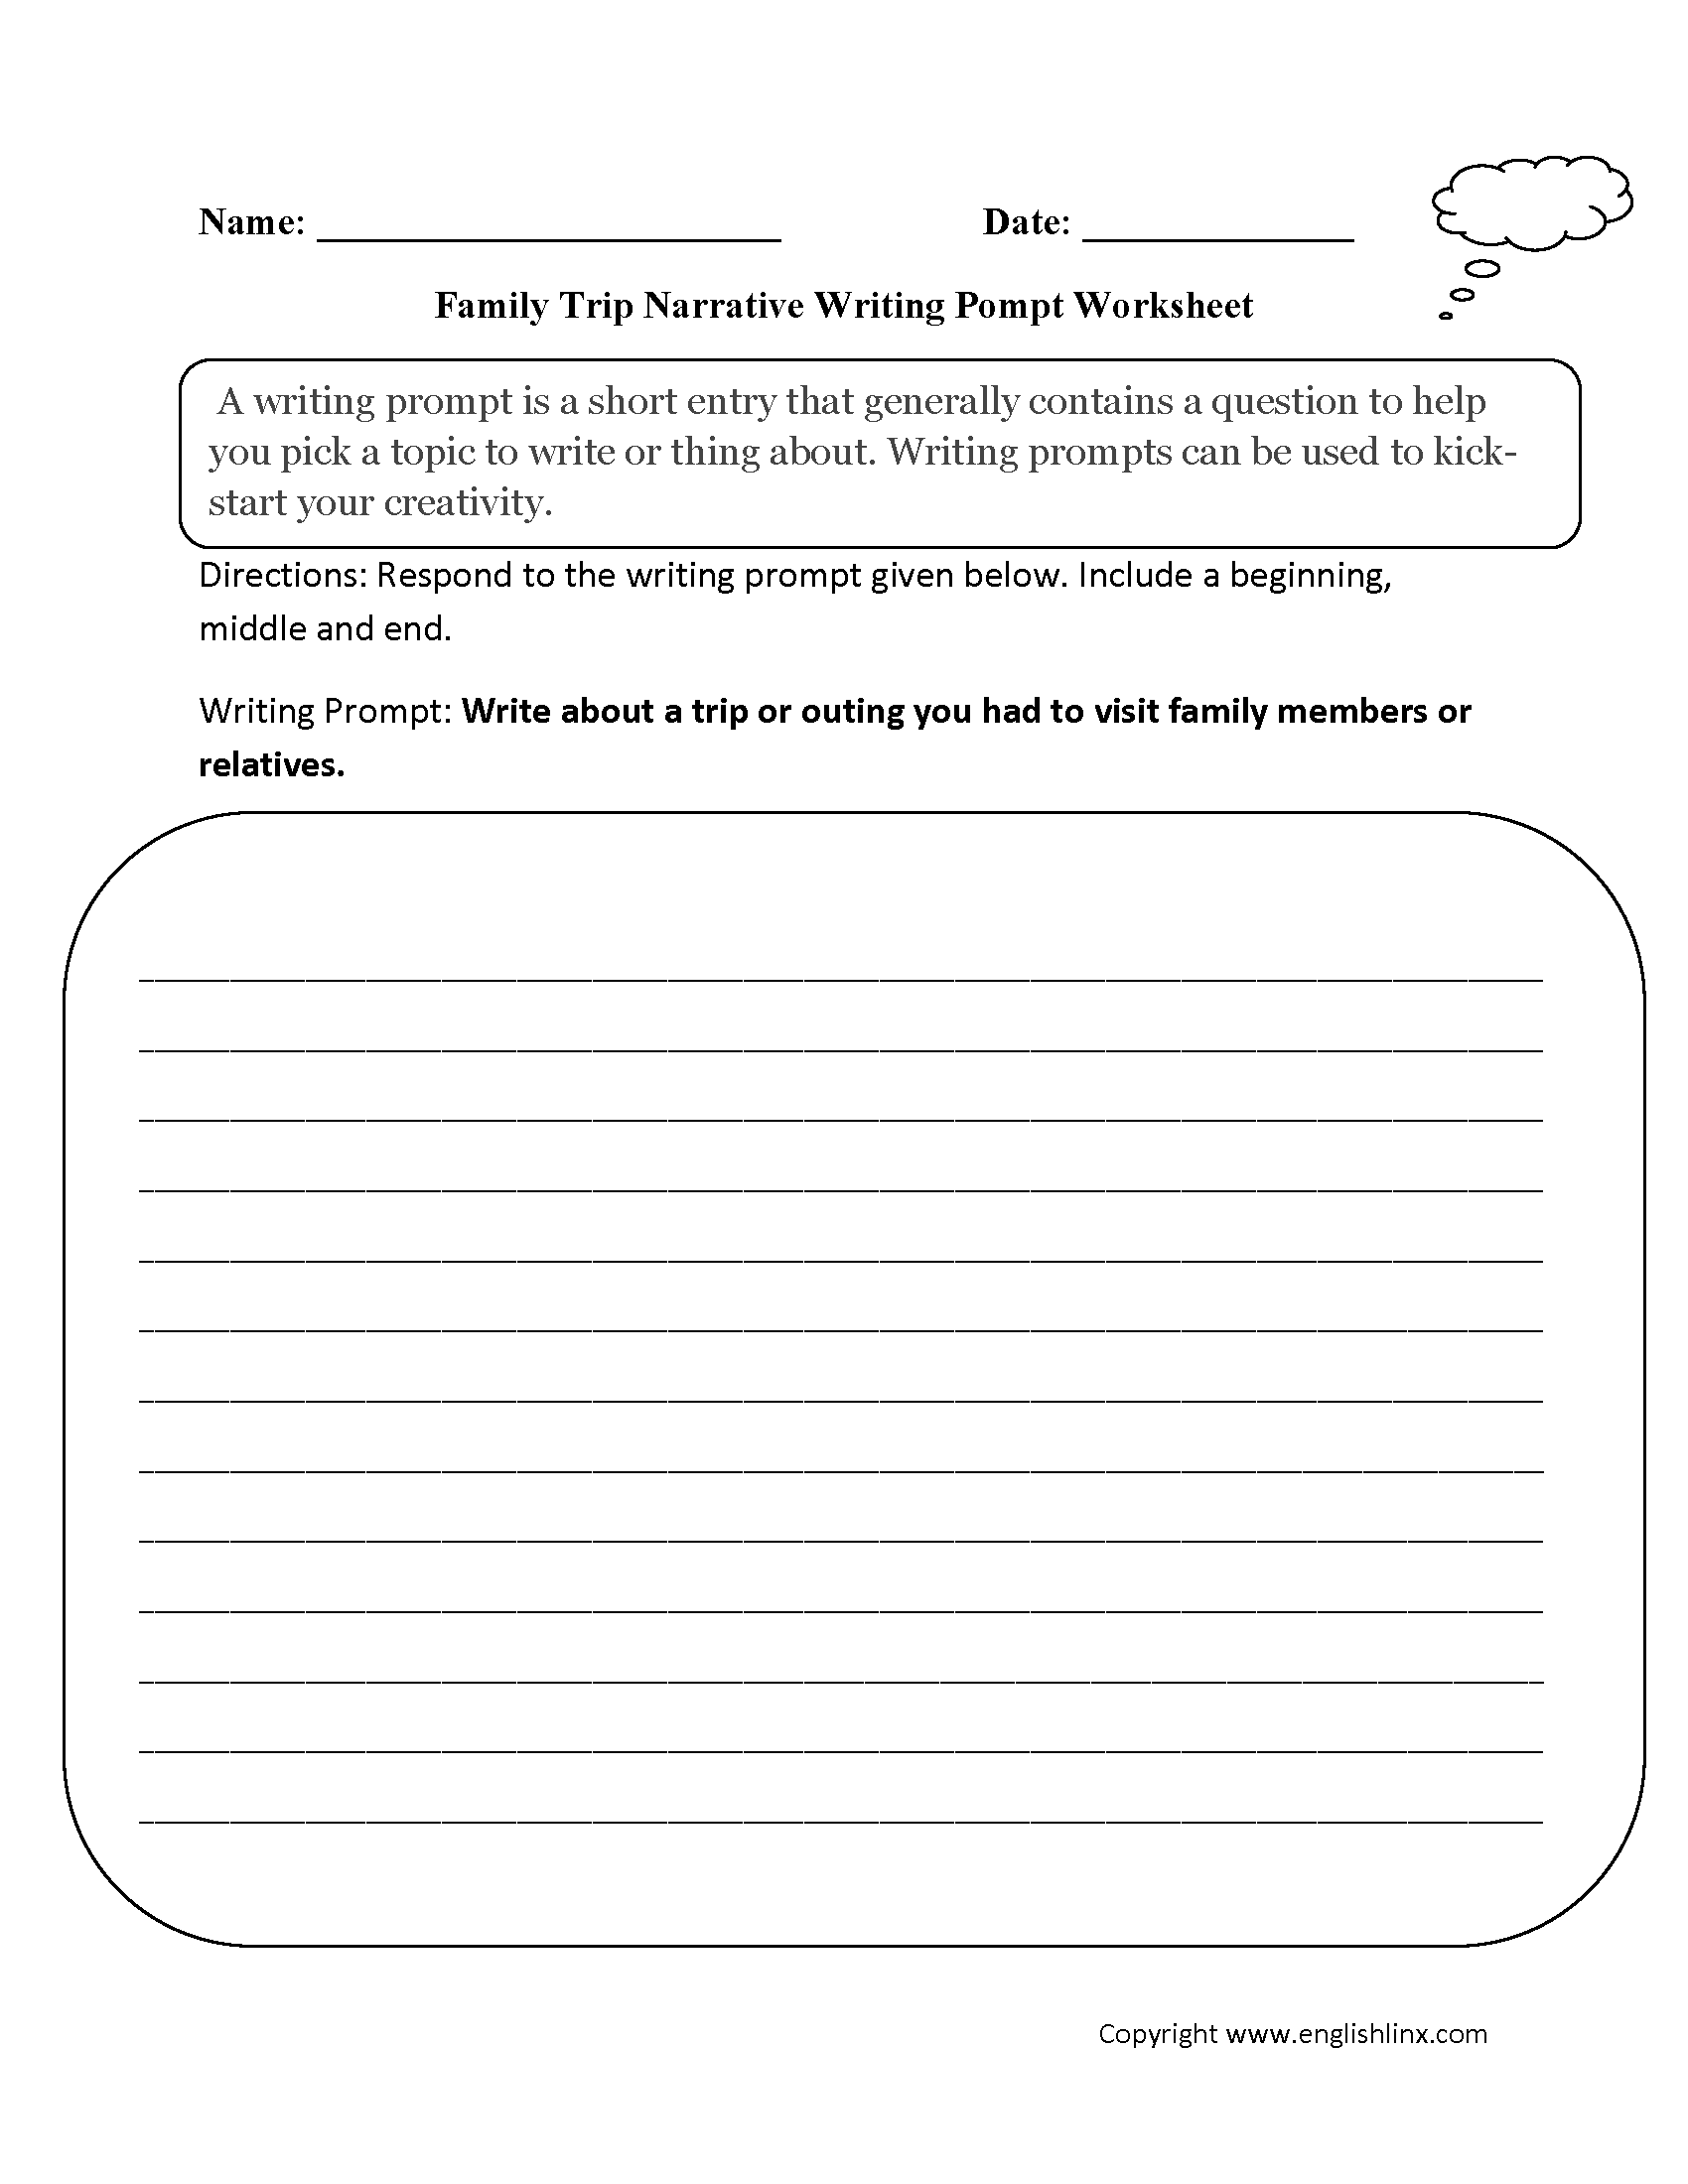 writing prompt worksheets. would be good for warm-ups at the